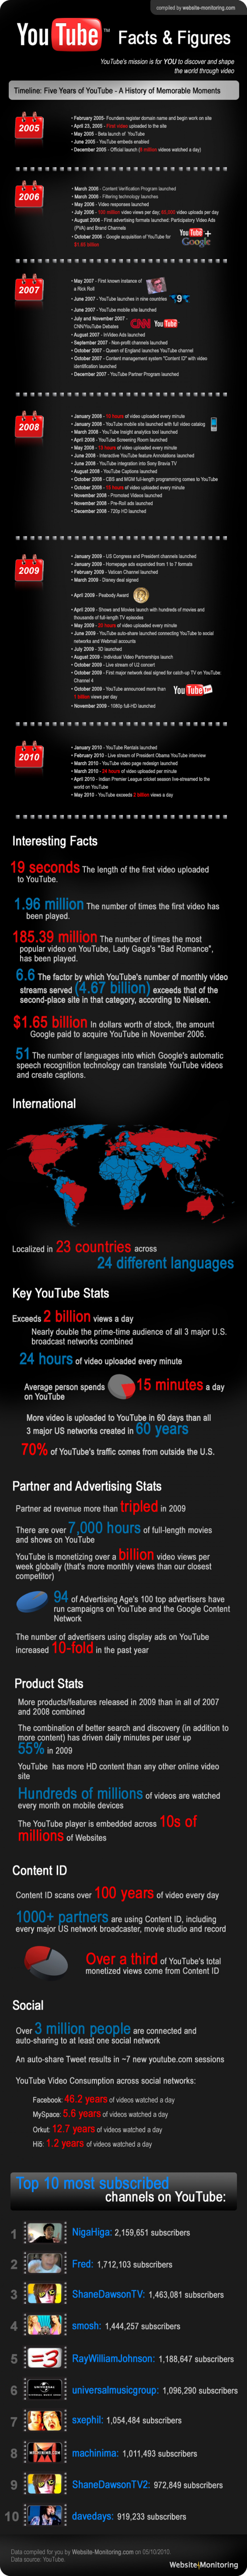 You-Tube: Facts and Figures Infographic